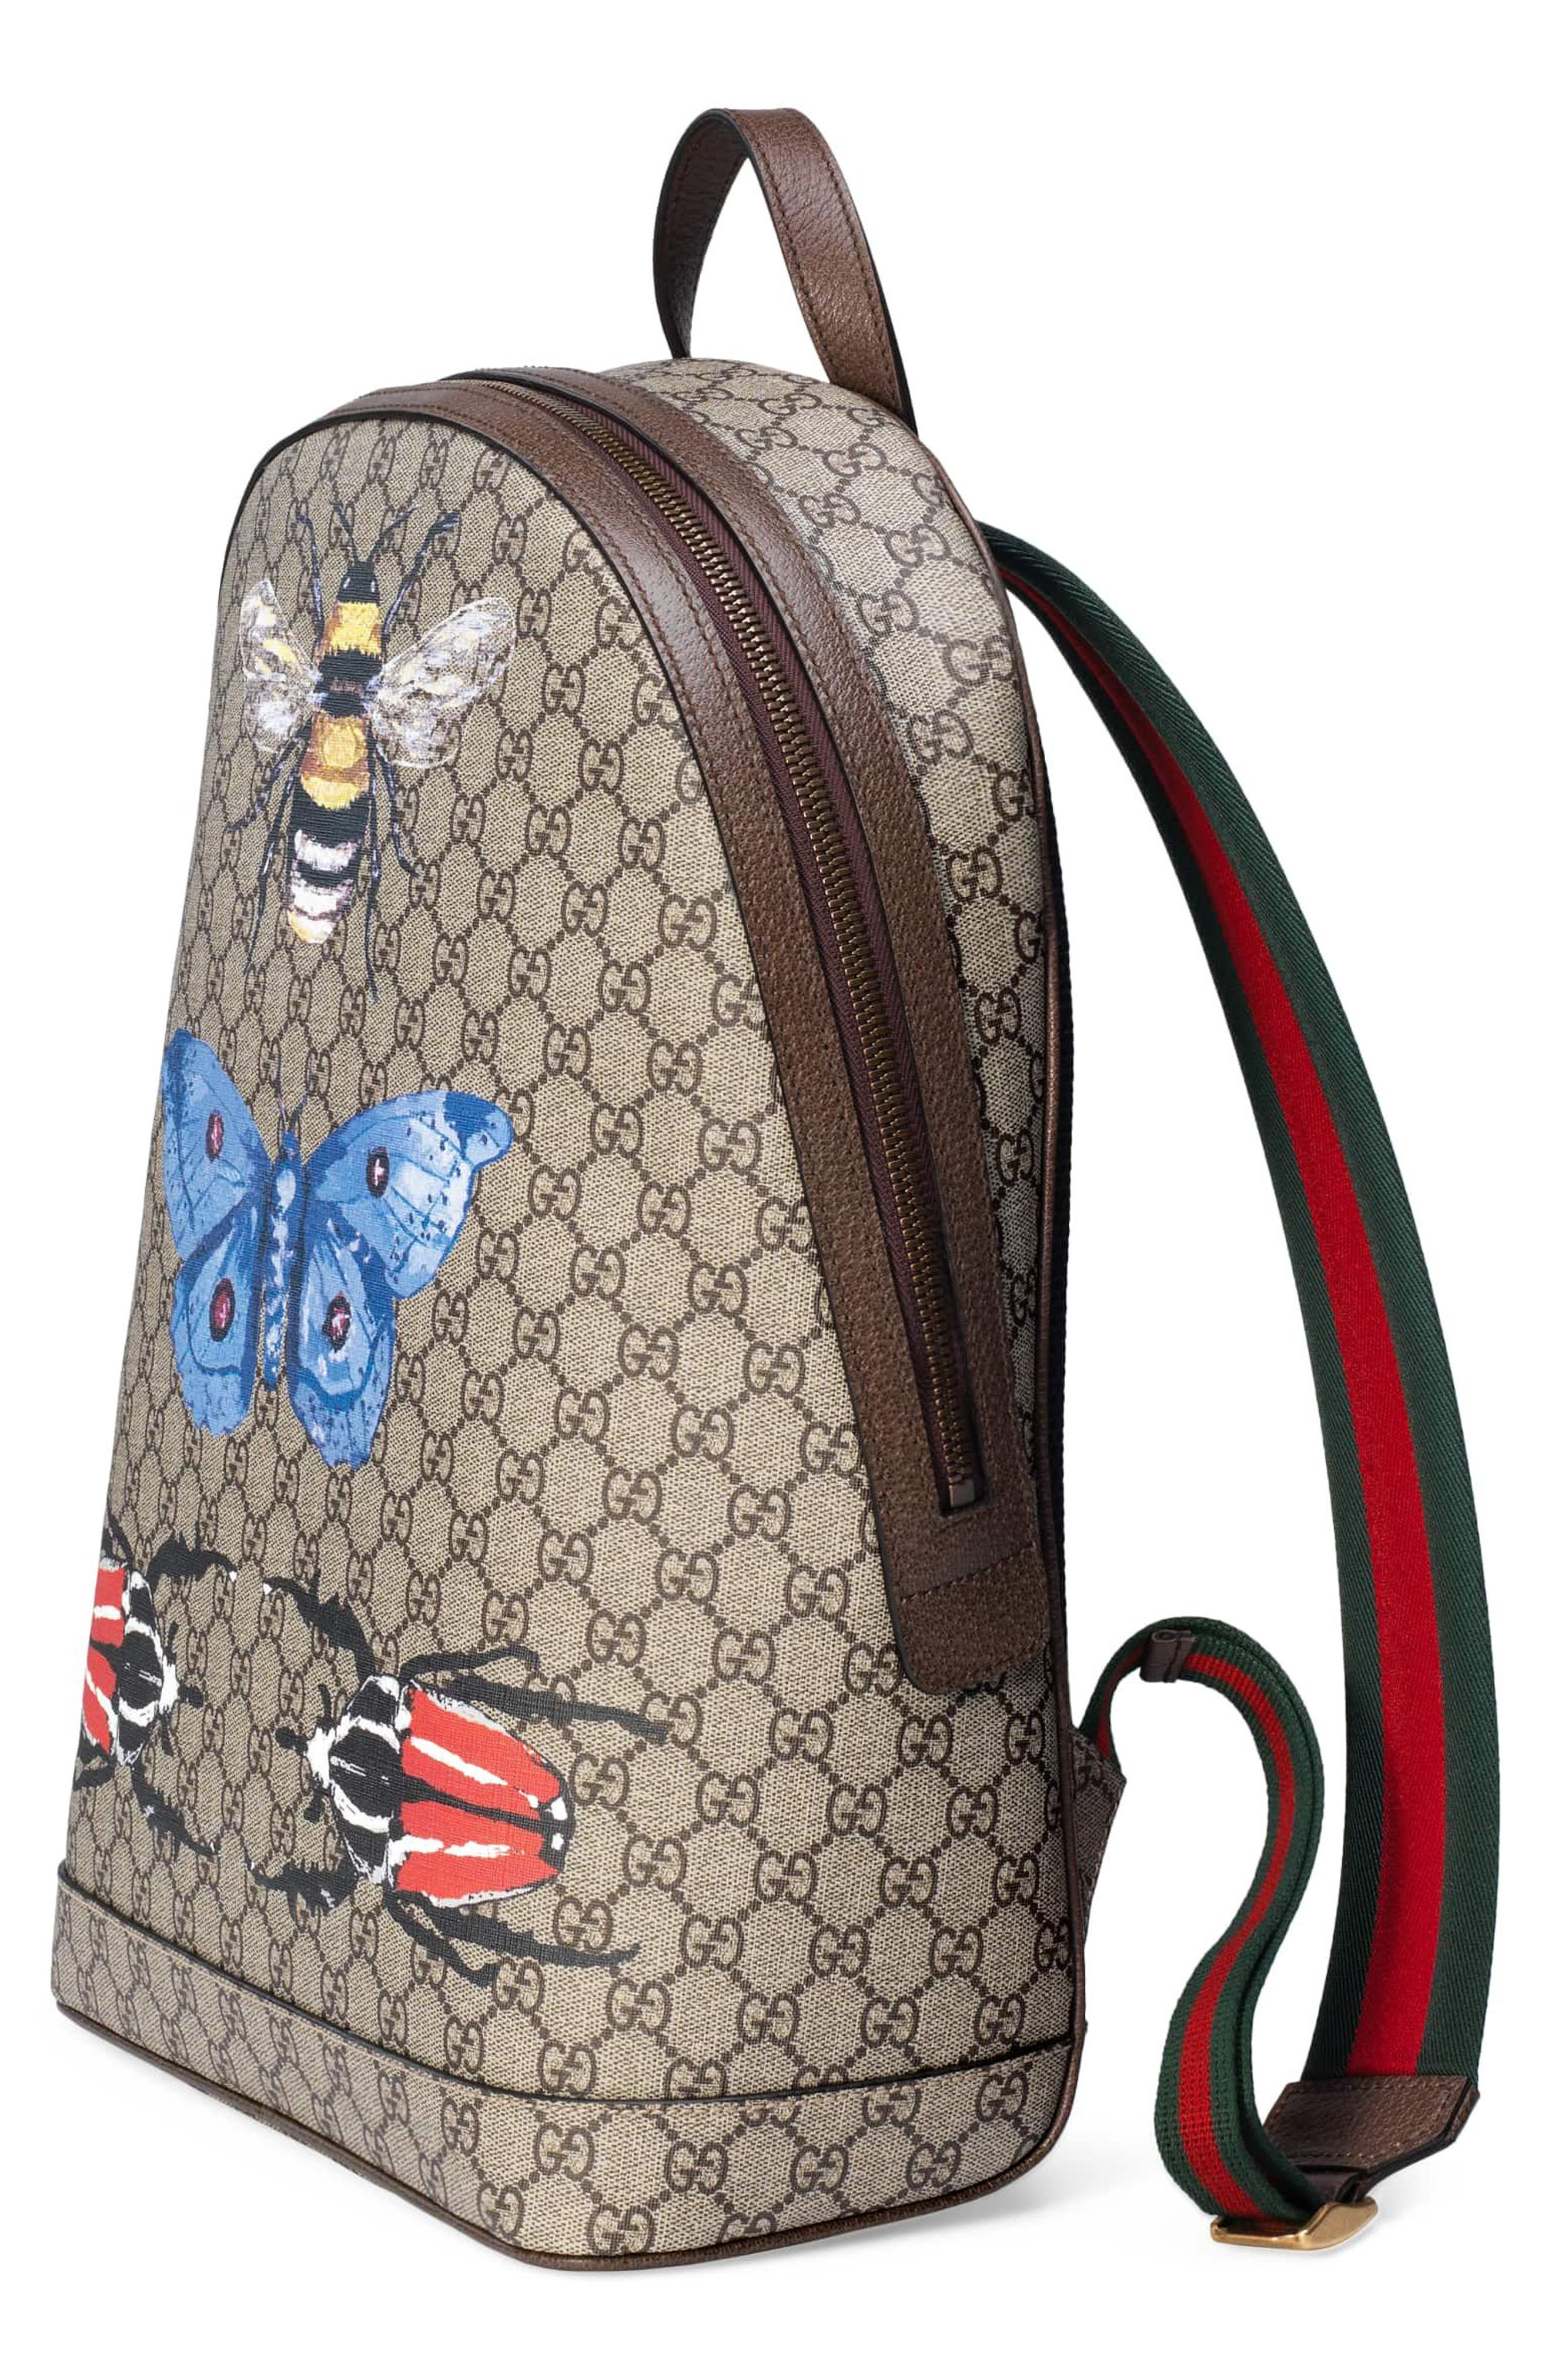 Insect Print GG Supreme Canvas Backpack,                             Alternate thumbnail 4, color,                             161